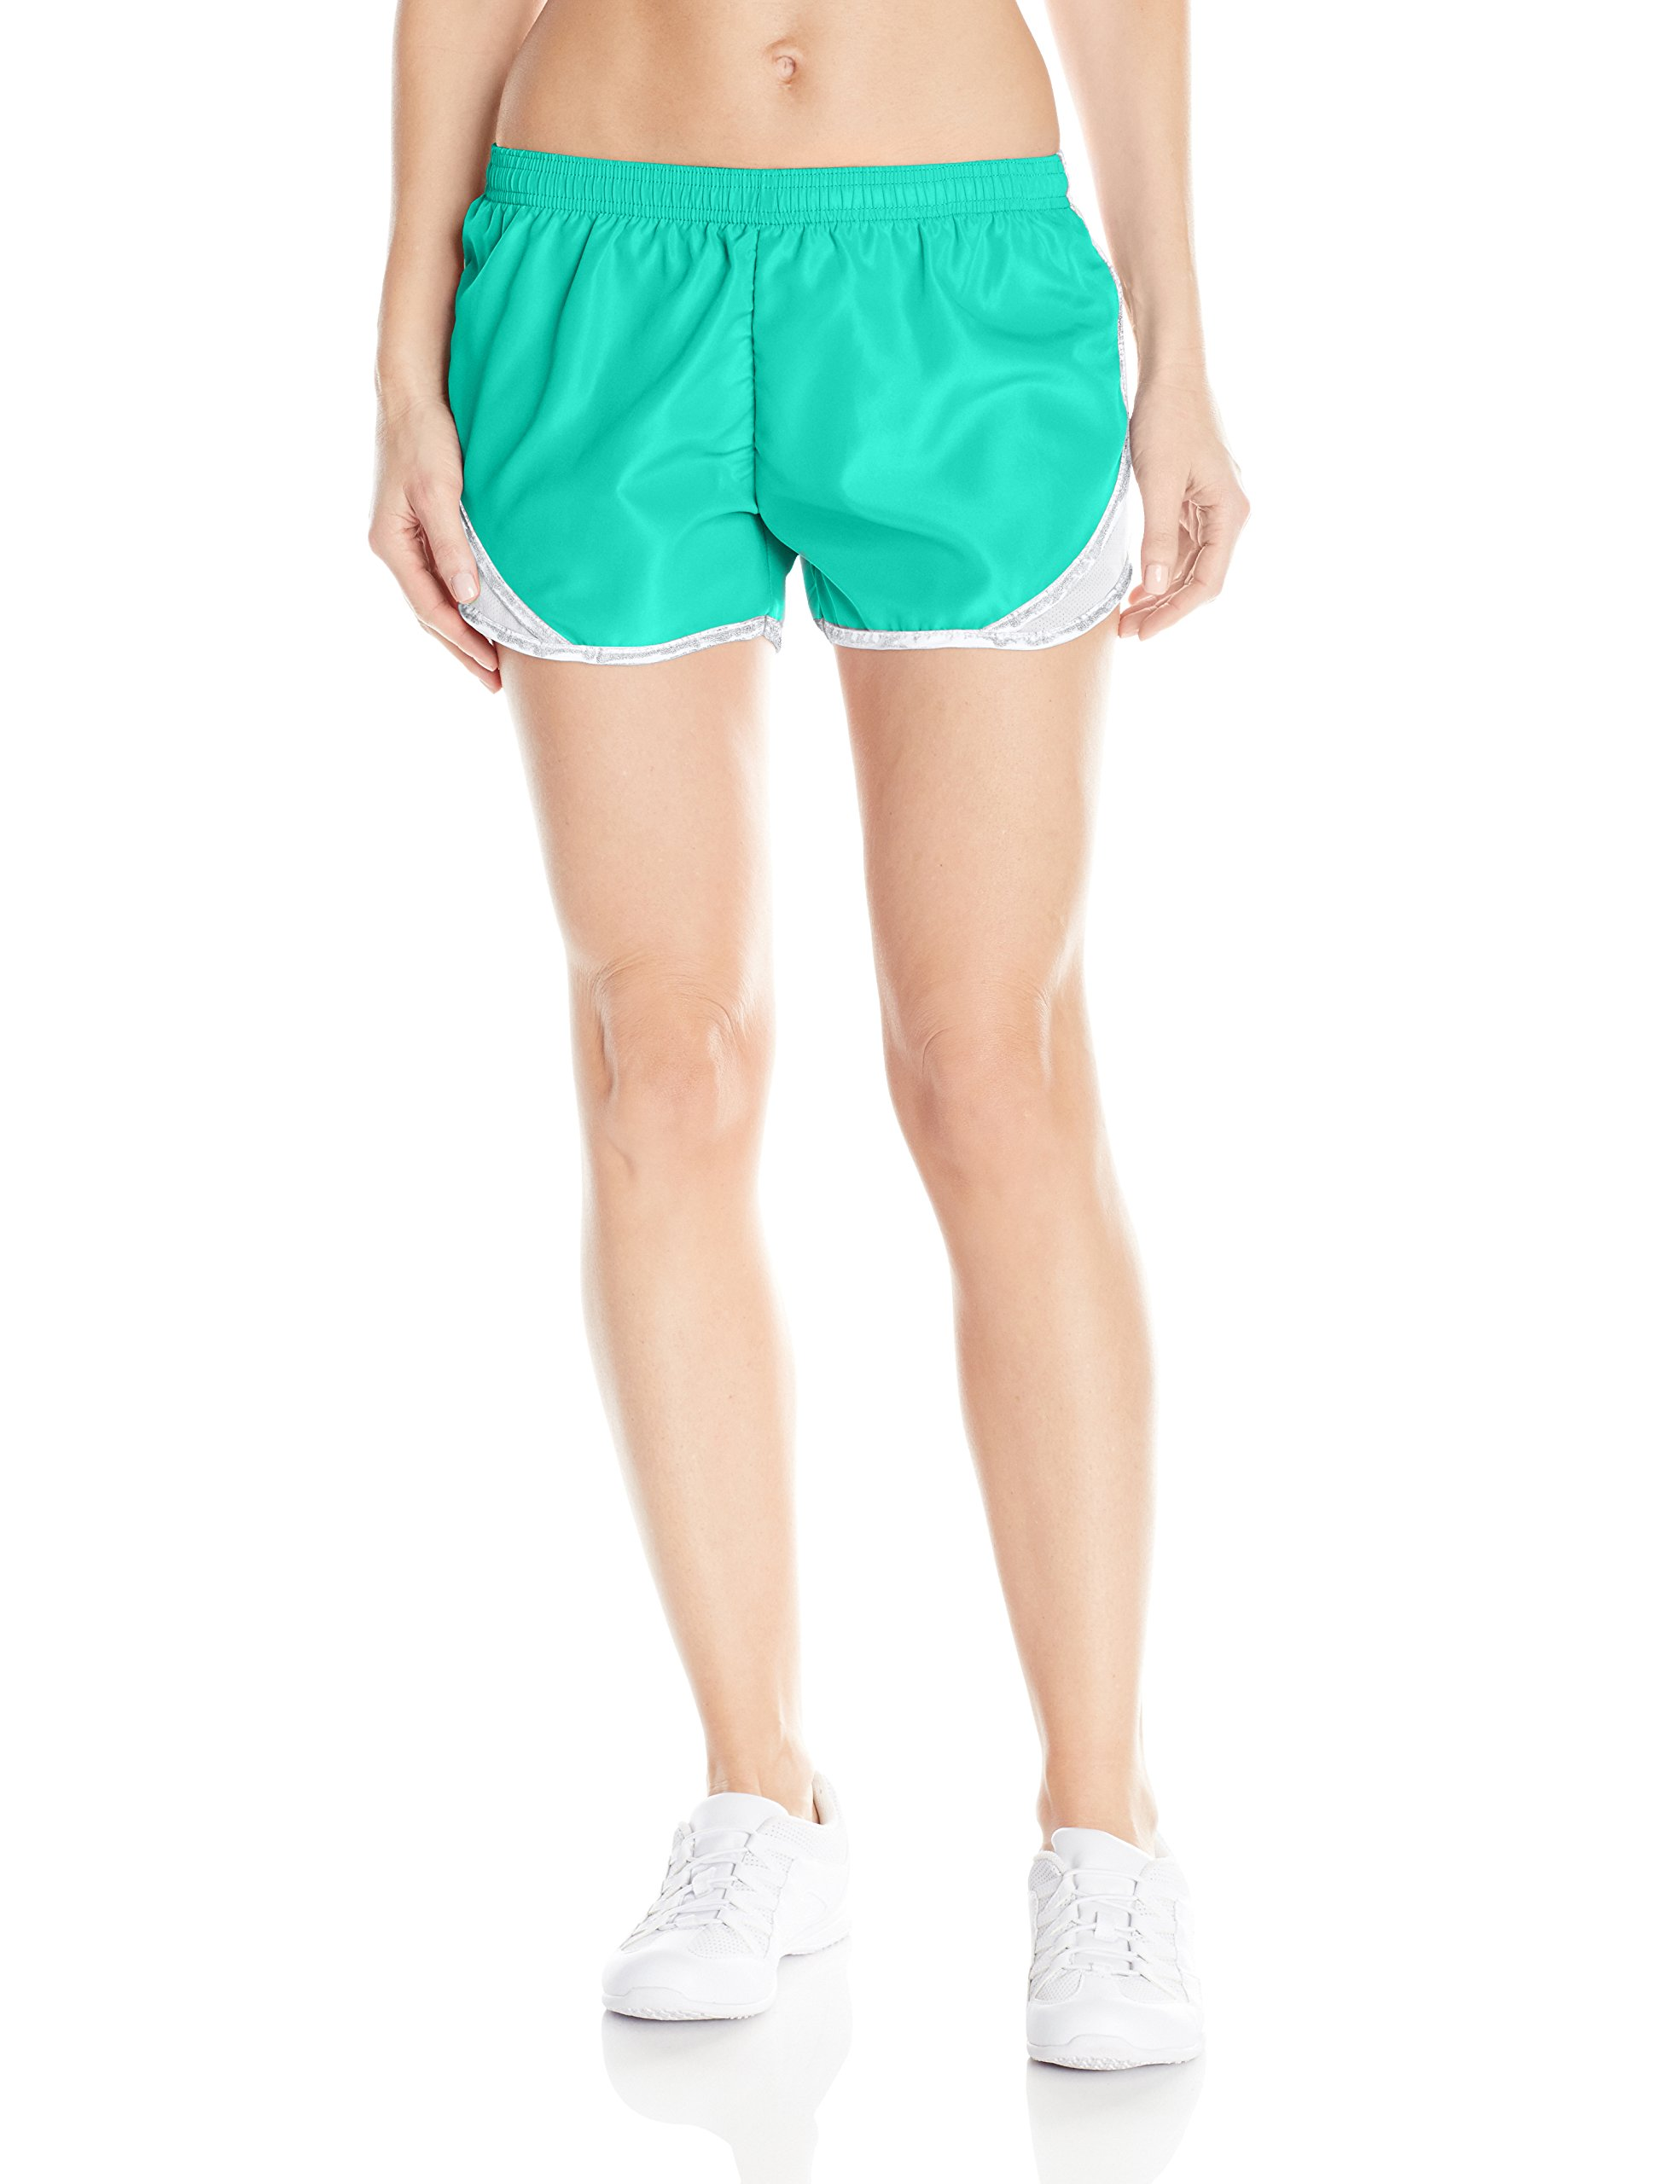 Soffe Women's Juniors' Team Shorty Shorts, Pool Blue/White/Silver, Large by Soffe